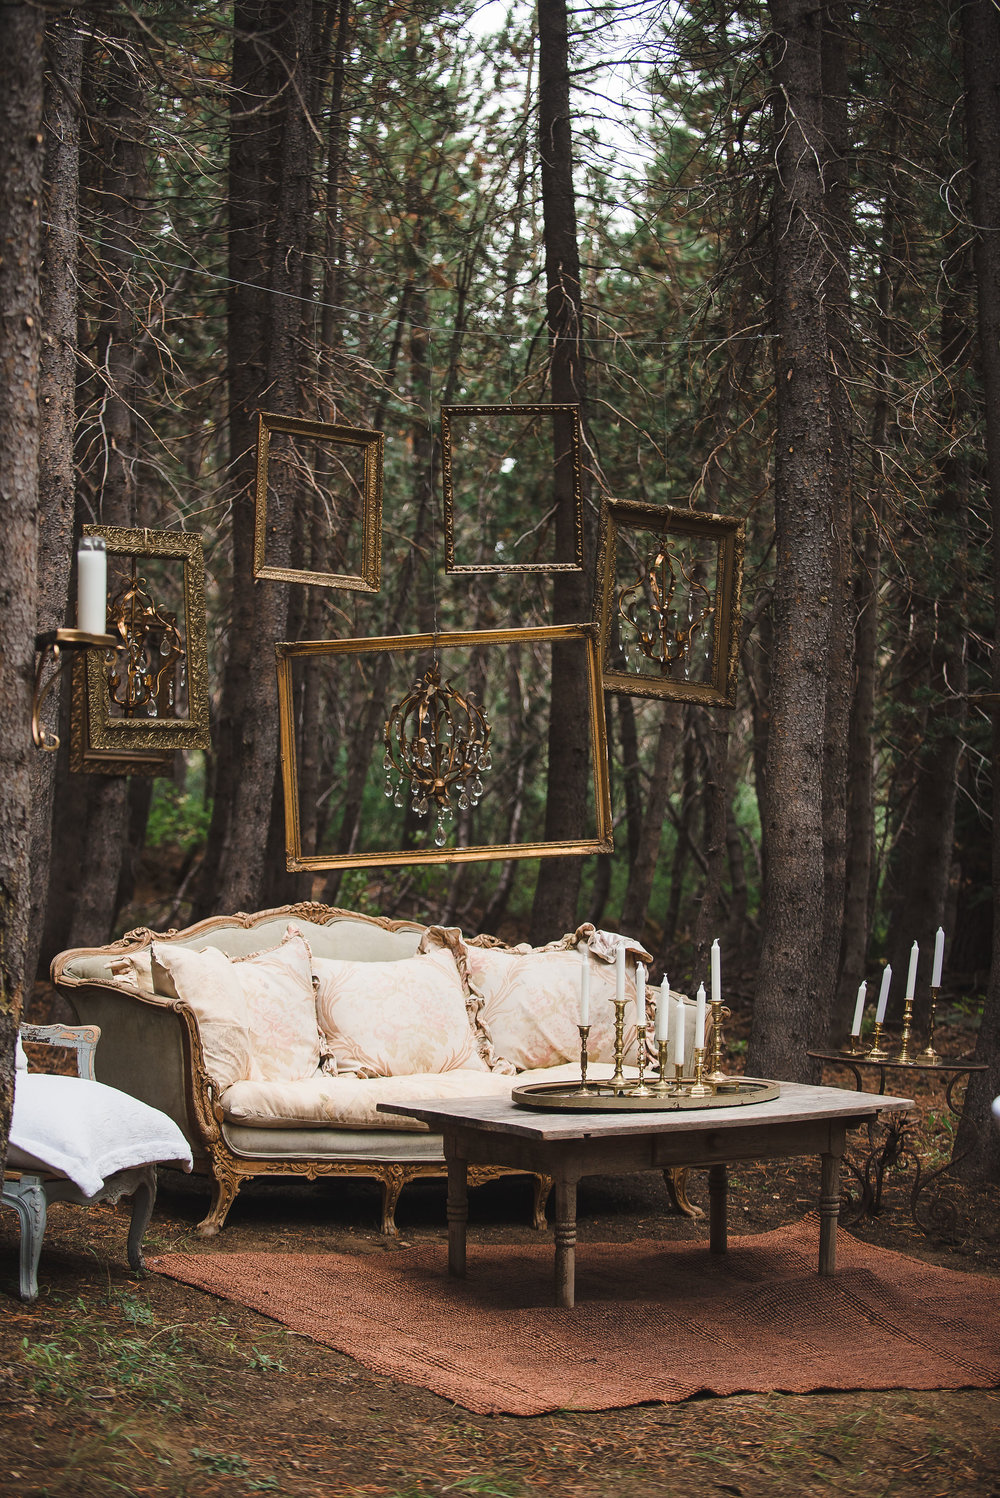 VINTAGE FURNITURE - The perfect combination of vintage furniture and drippy candles make for a rustic outdoor ambiance.